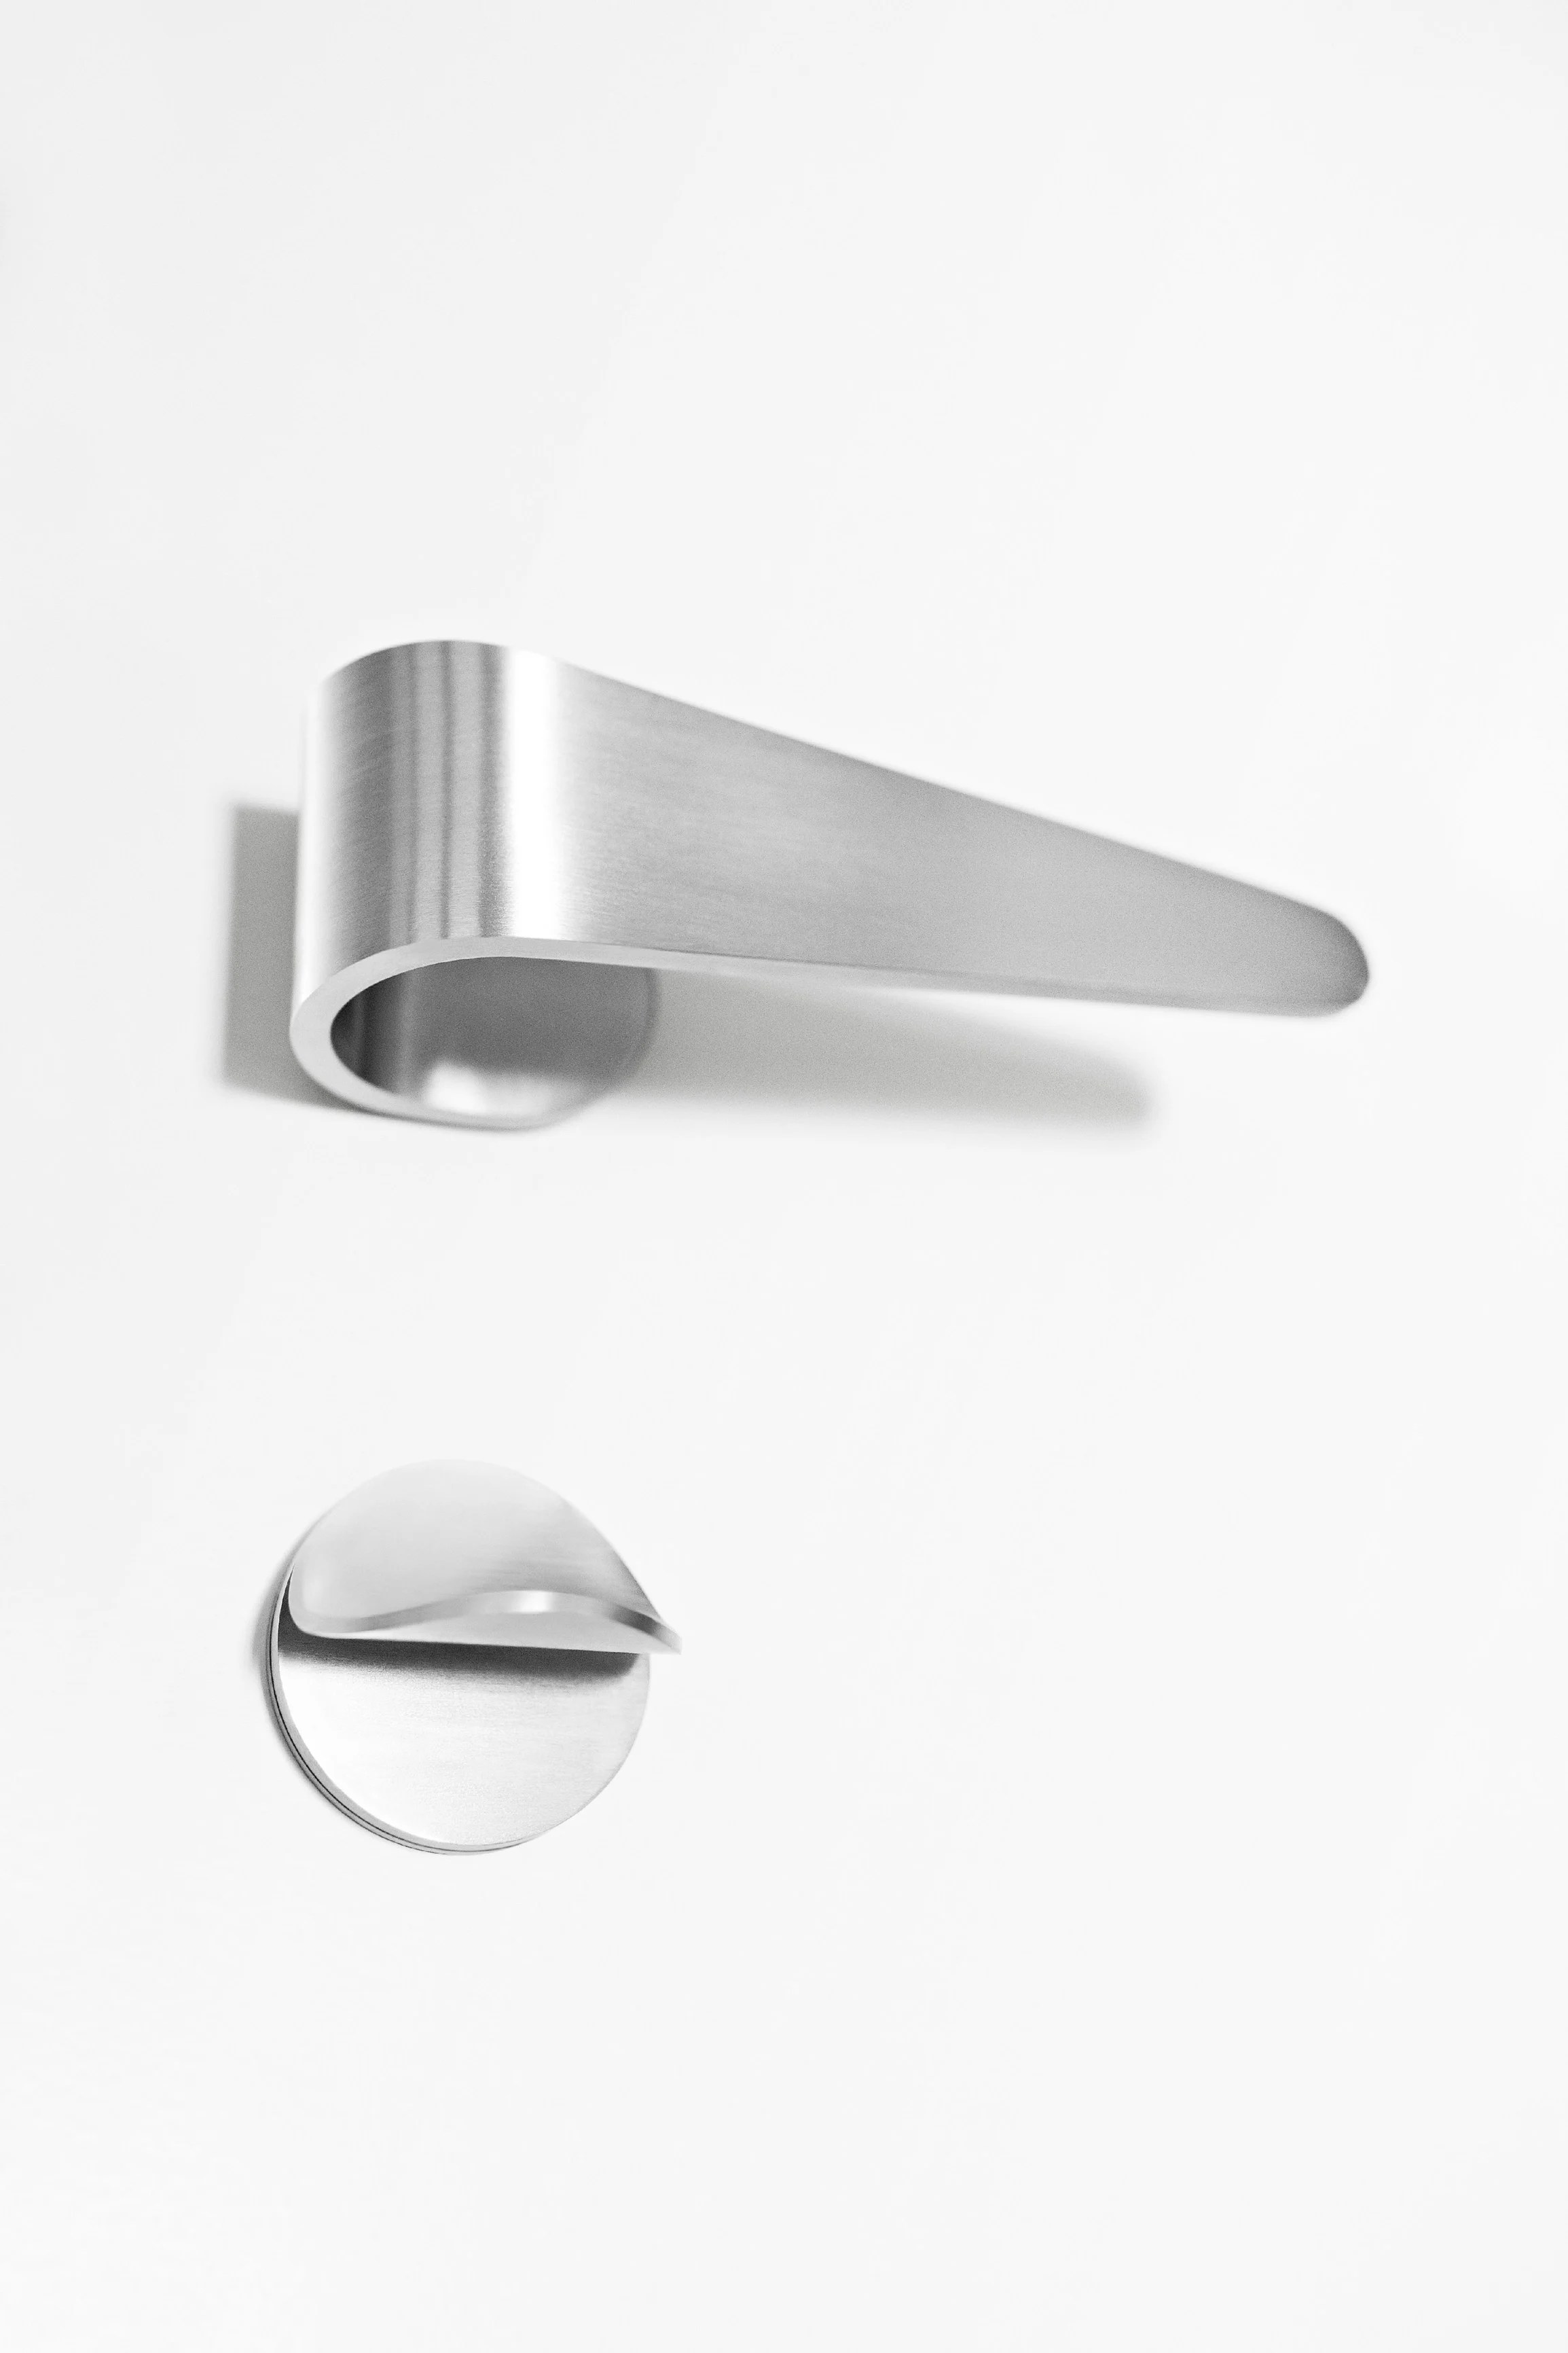 FOLD Door handle with lock by Formani Holland B.V. design